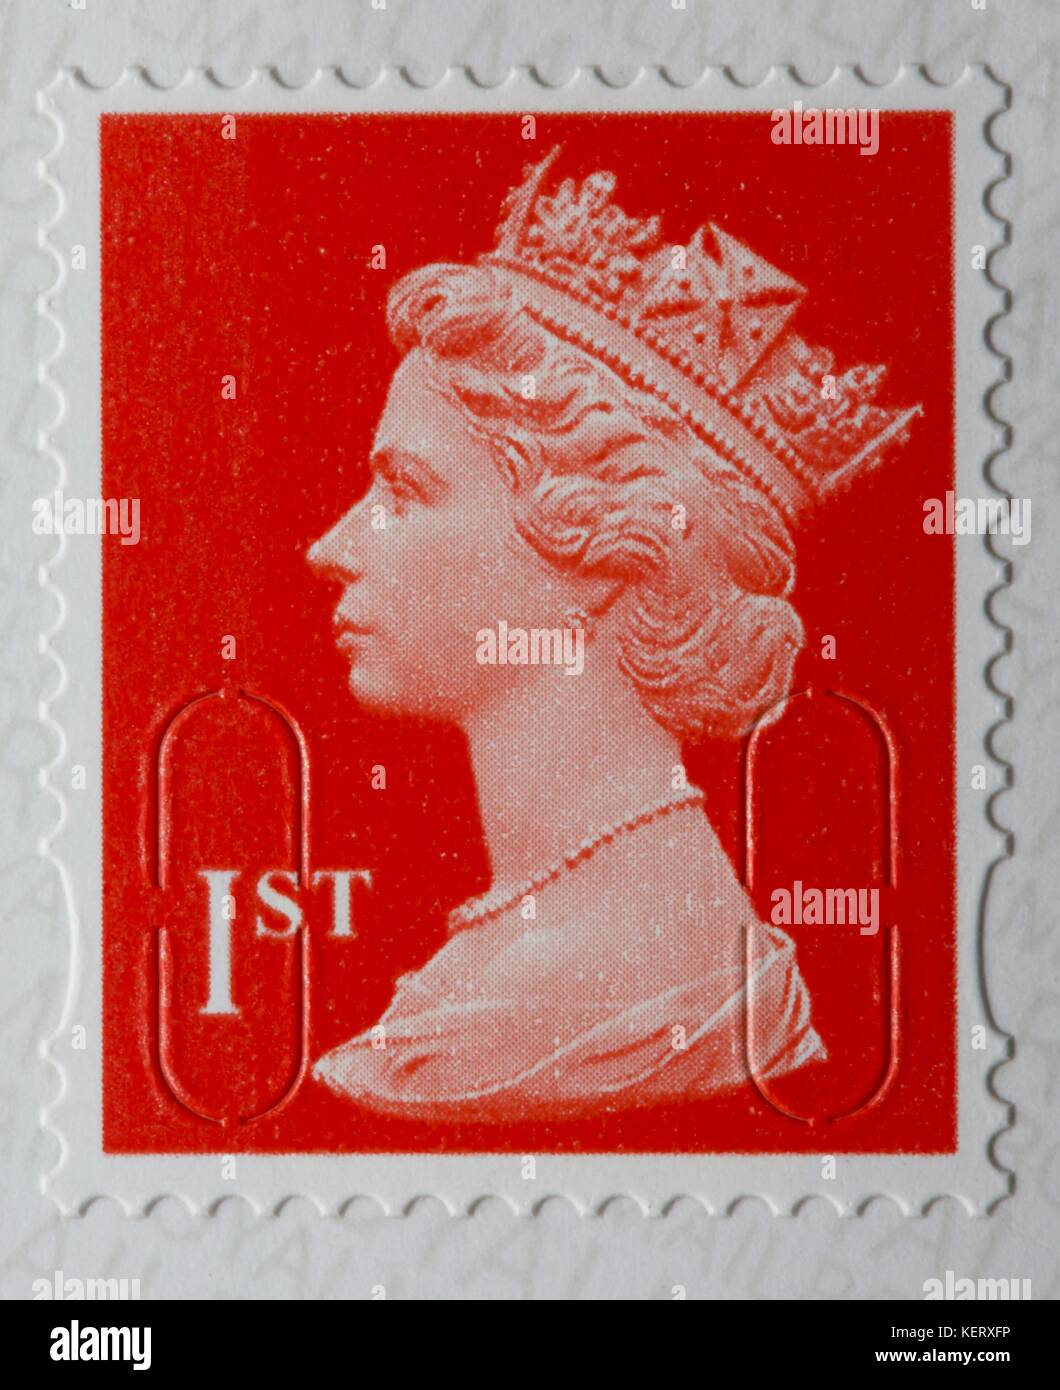 Royal Mail 1st class stamp - Stock Image